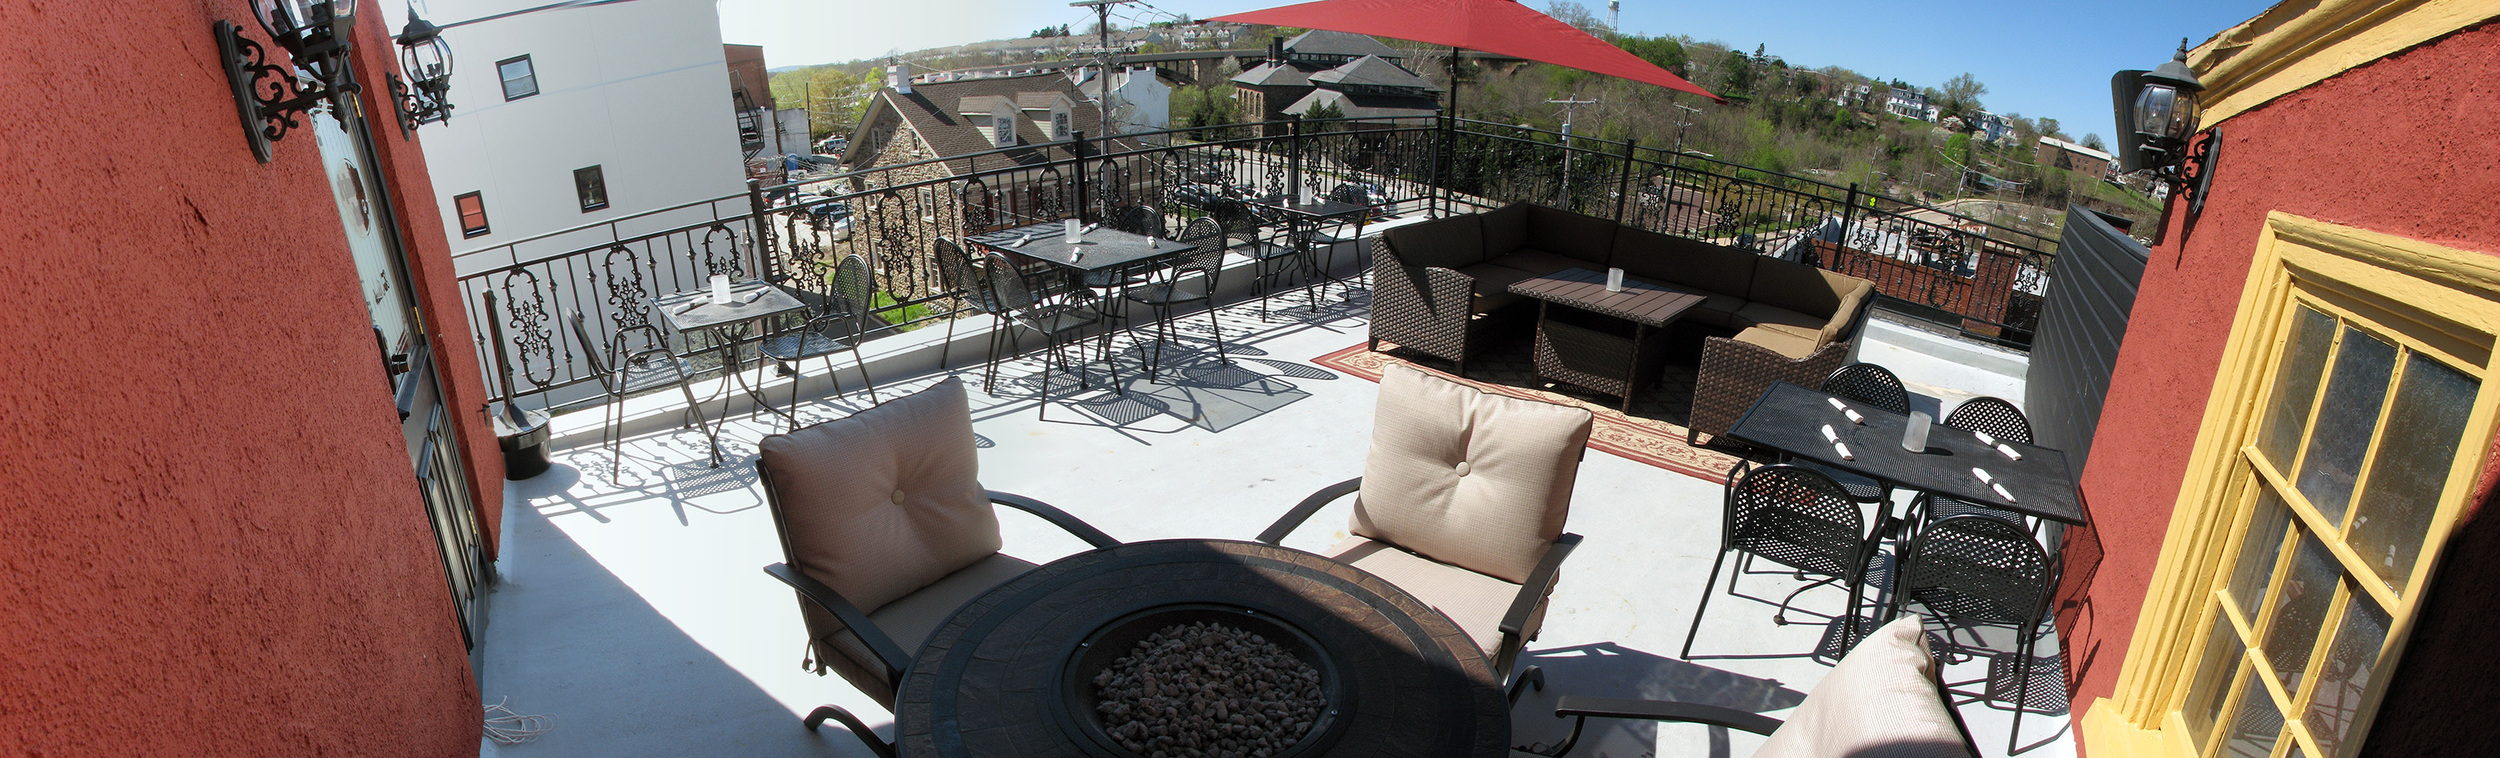 Mollys Rooftop patio with multiple tables, chairs, and wicker furniture.